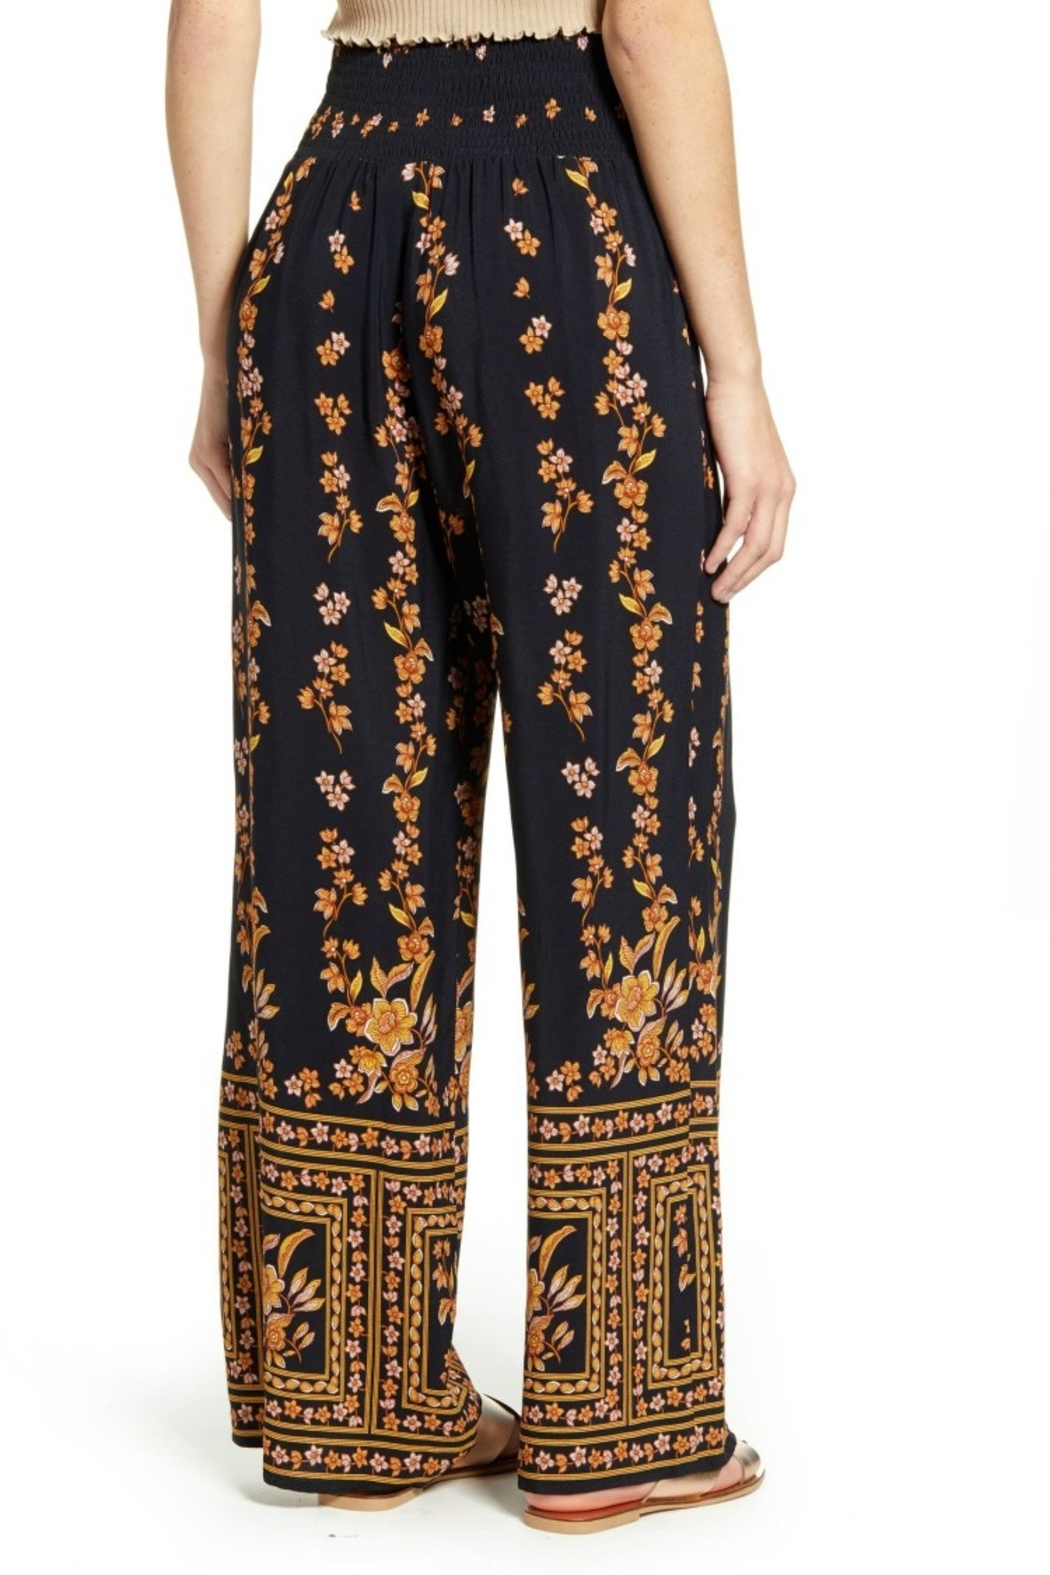 Band Of Gypsies LUXOR PANT - Front Full Image